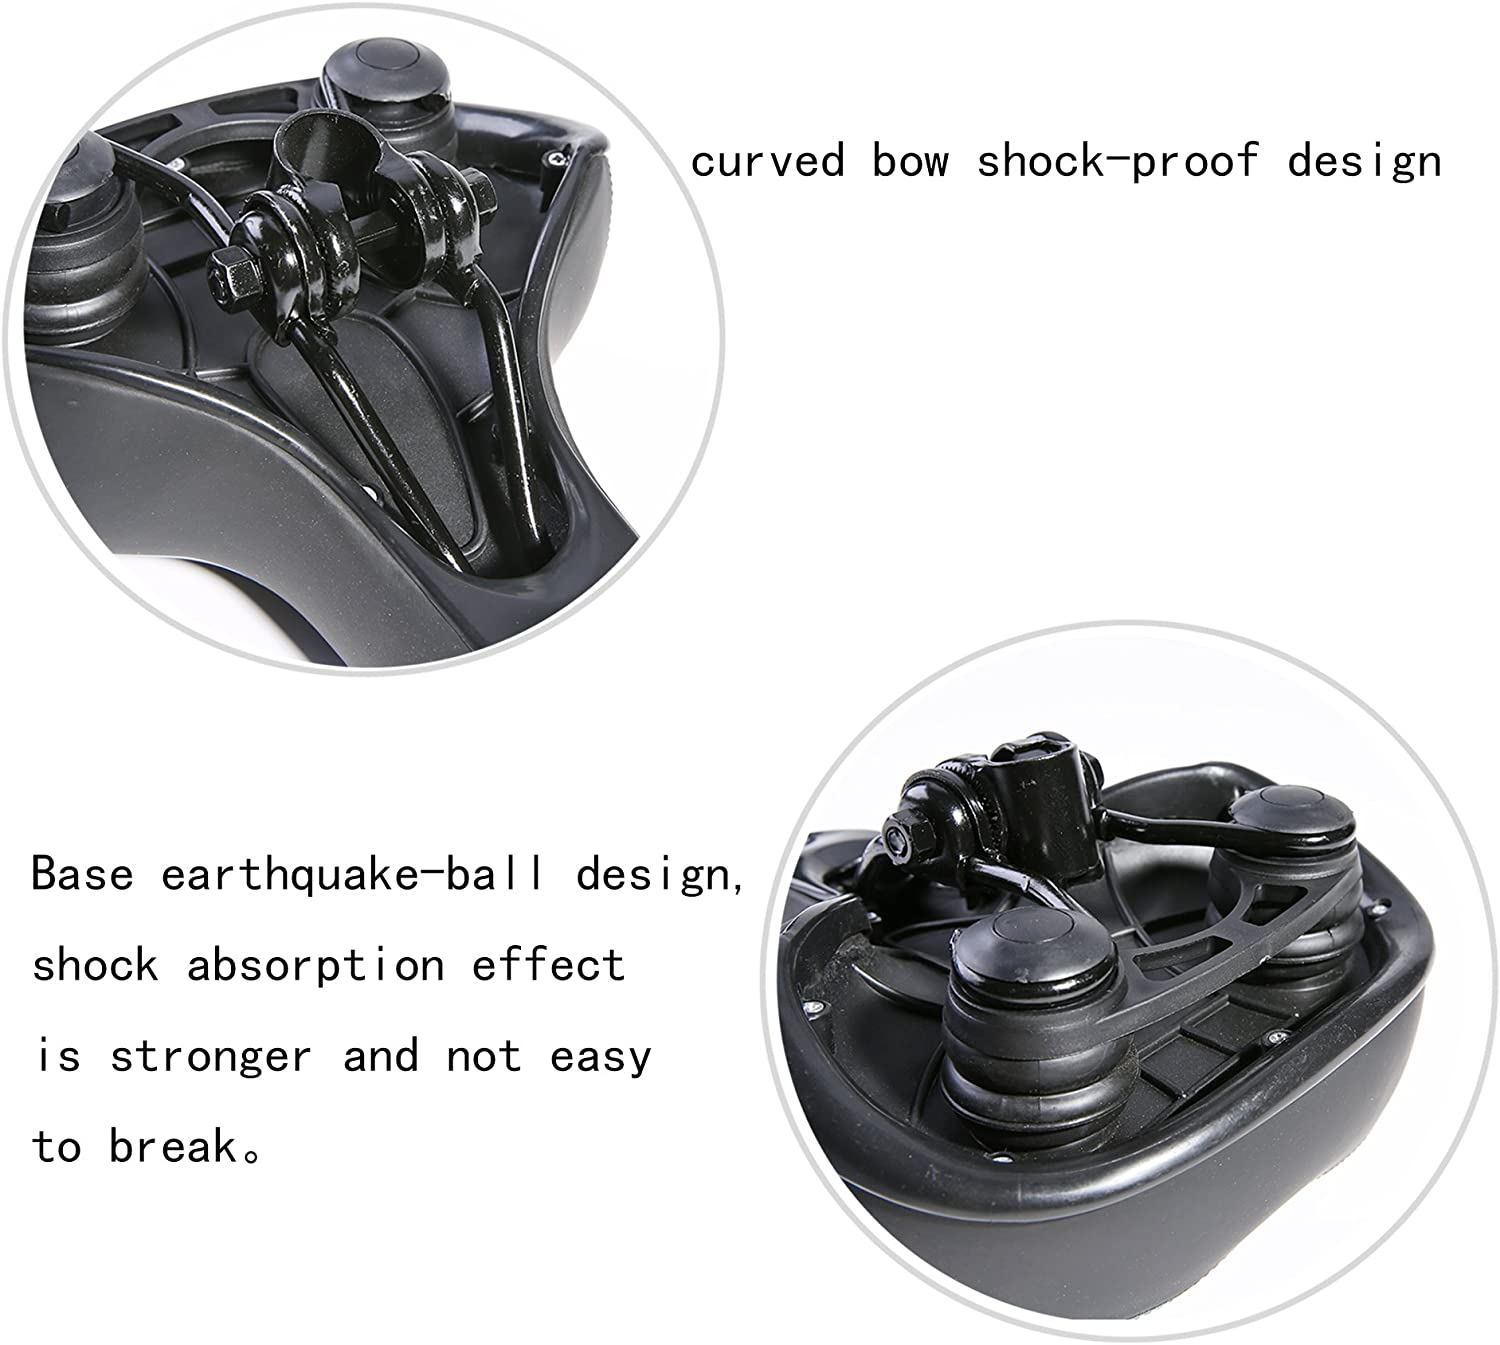 UNISTRENGH Bike Saddle Exclusive Shock Absorber Ball Base Big Bum Extra Wide Leather Bicycle Seat Soft Comfy Gel Padded Cushion with Reflective Tape